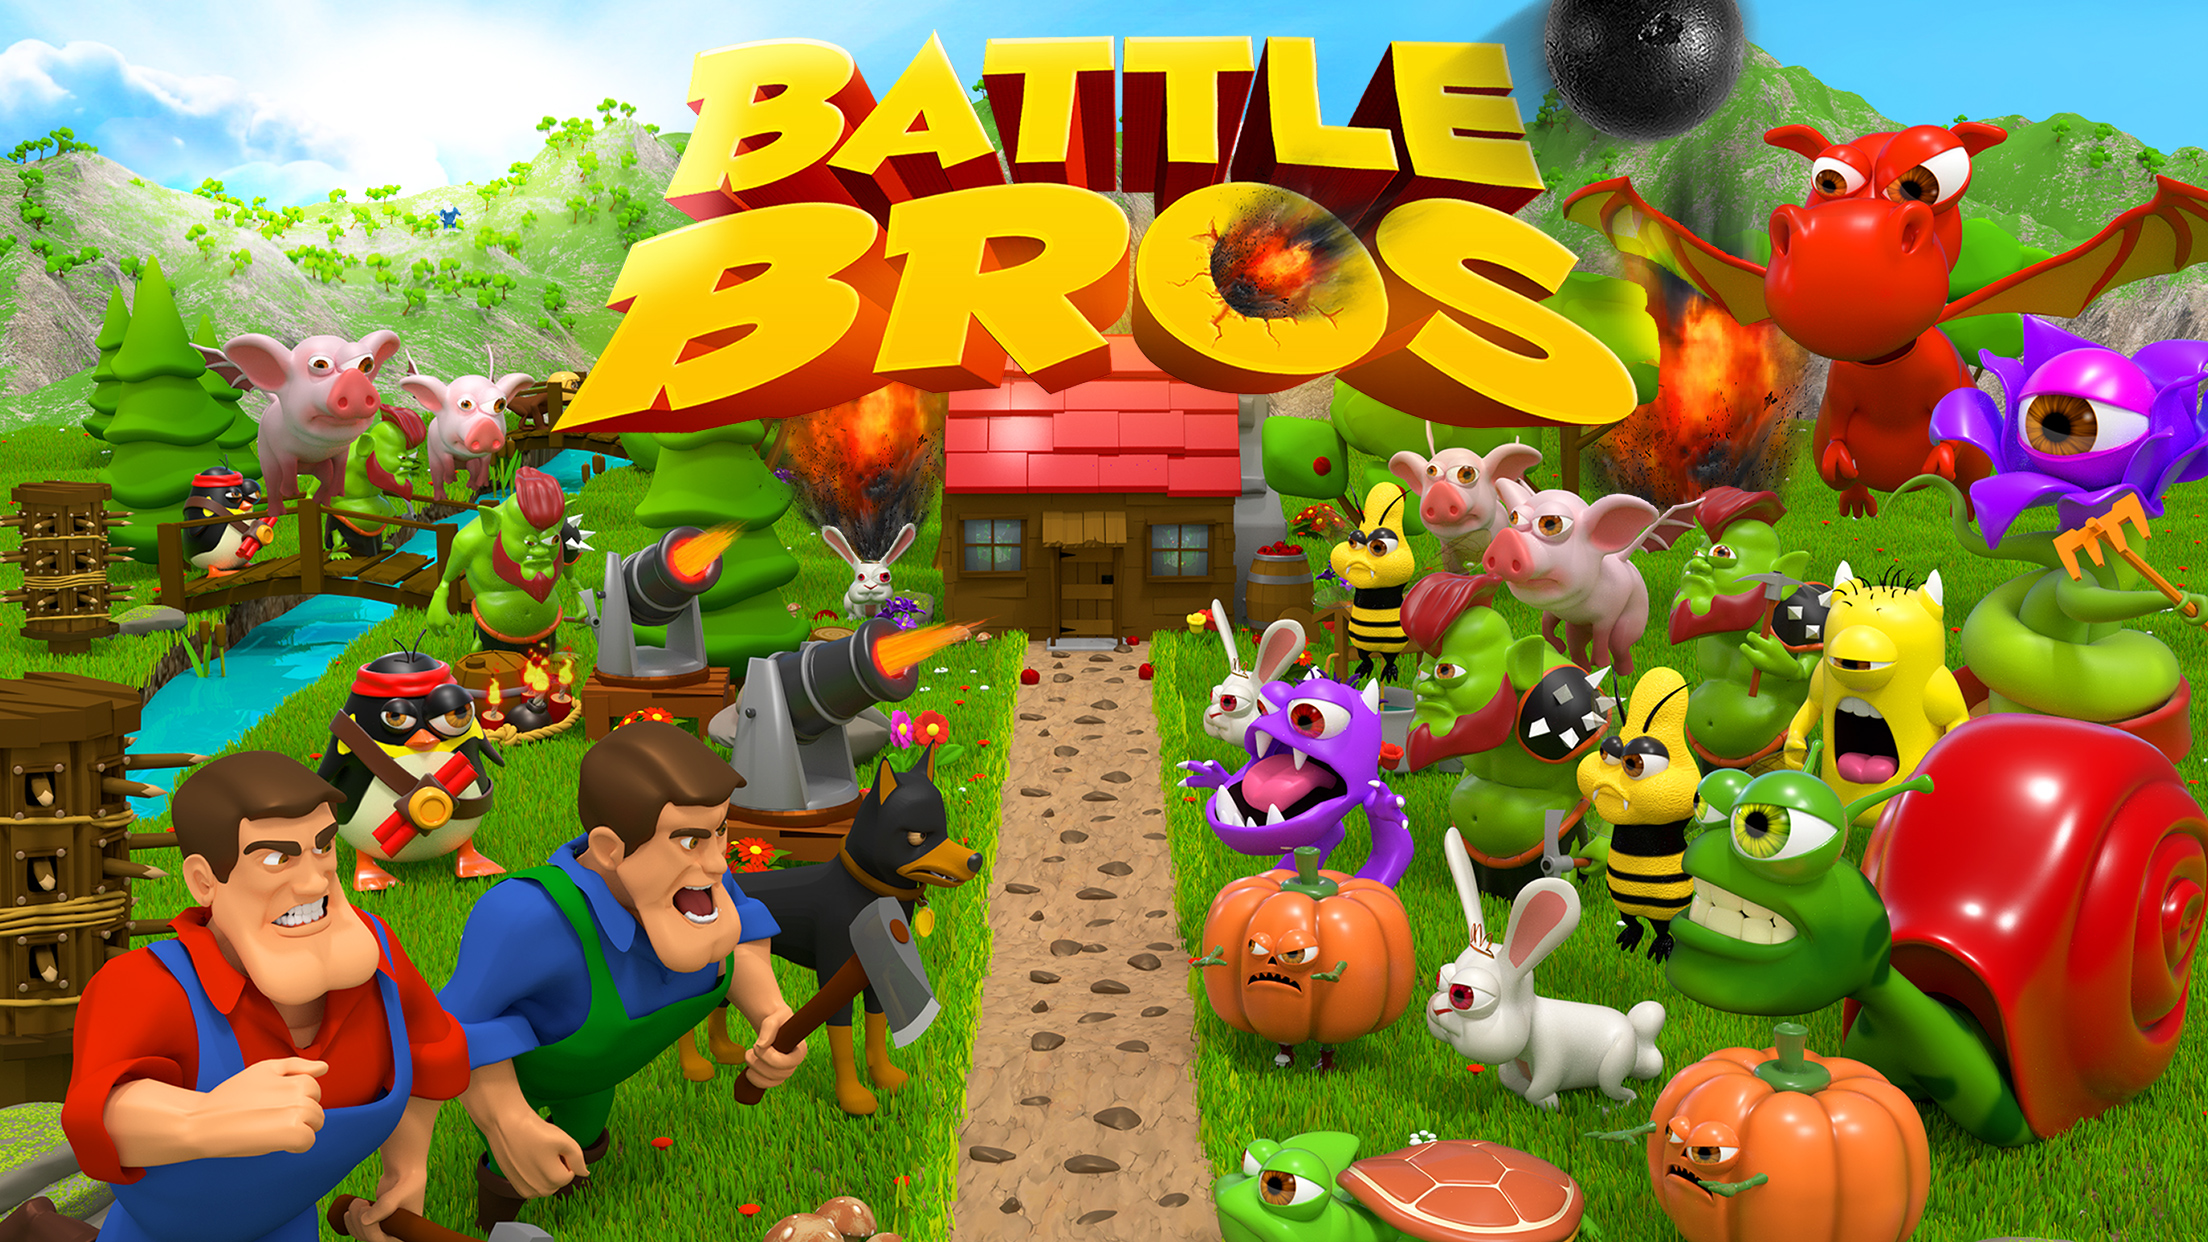 Defend your precious land against evil minions in Battle Bros